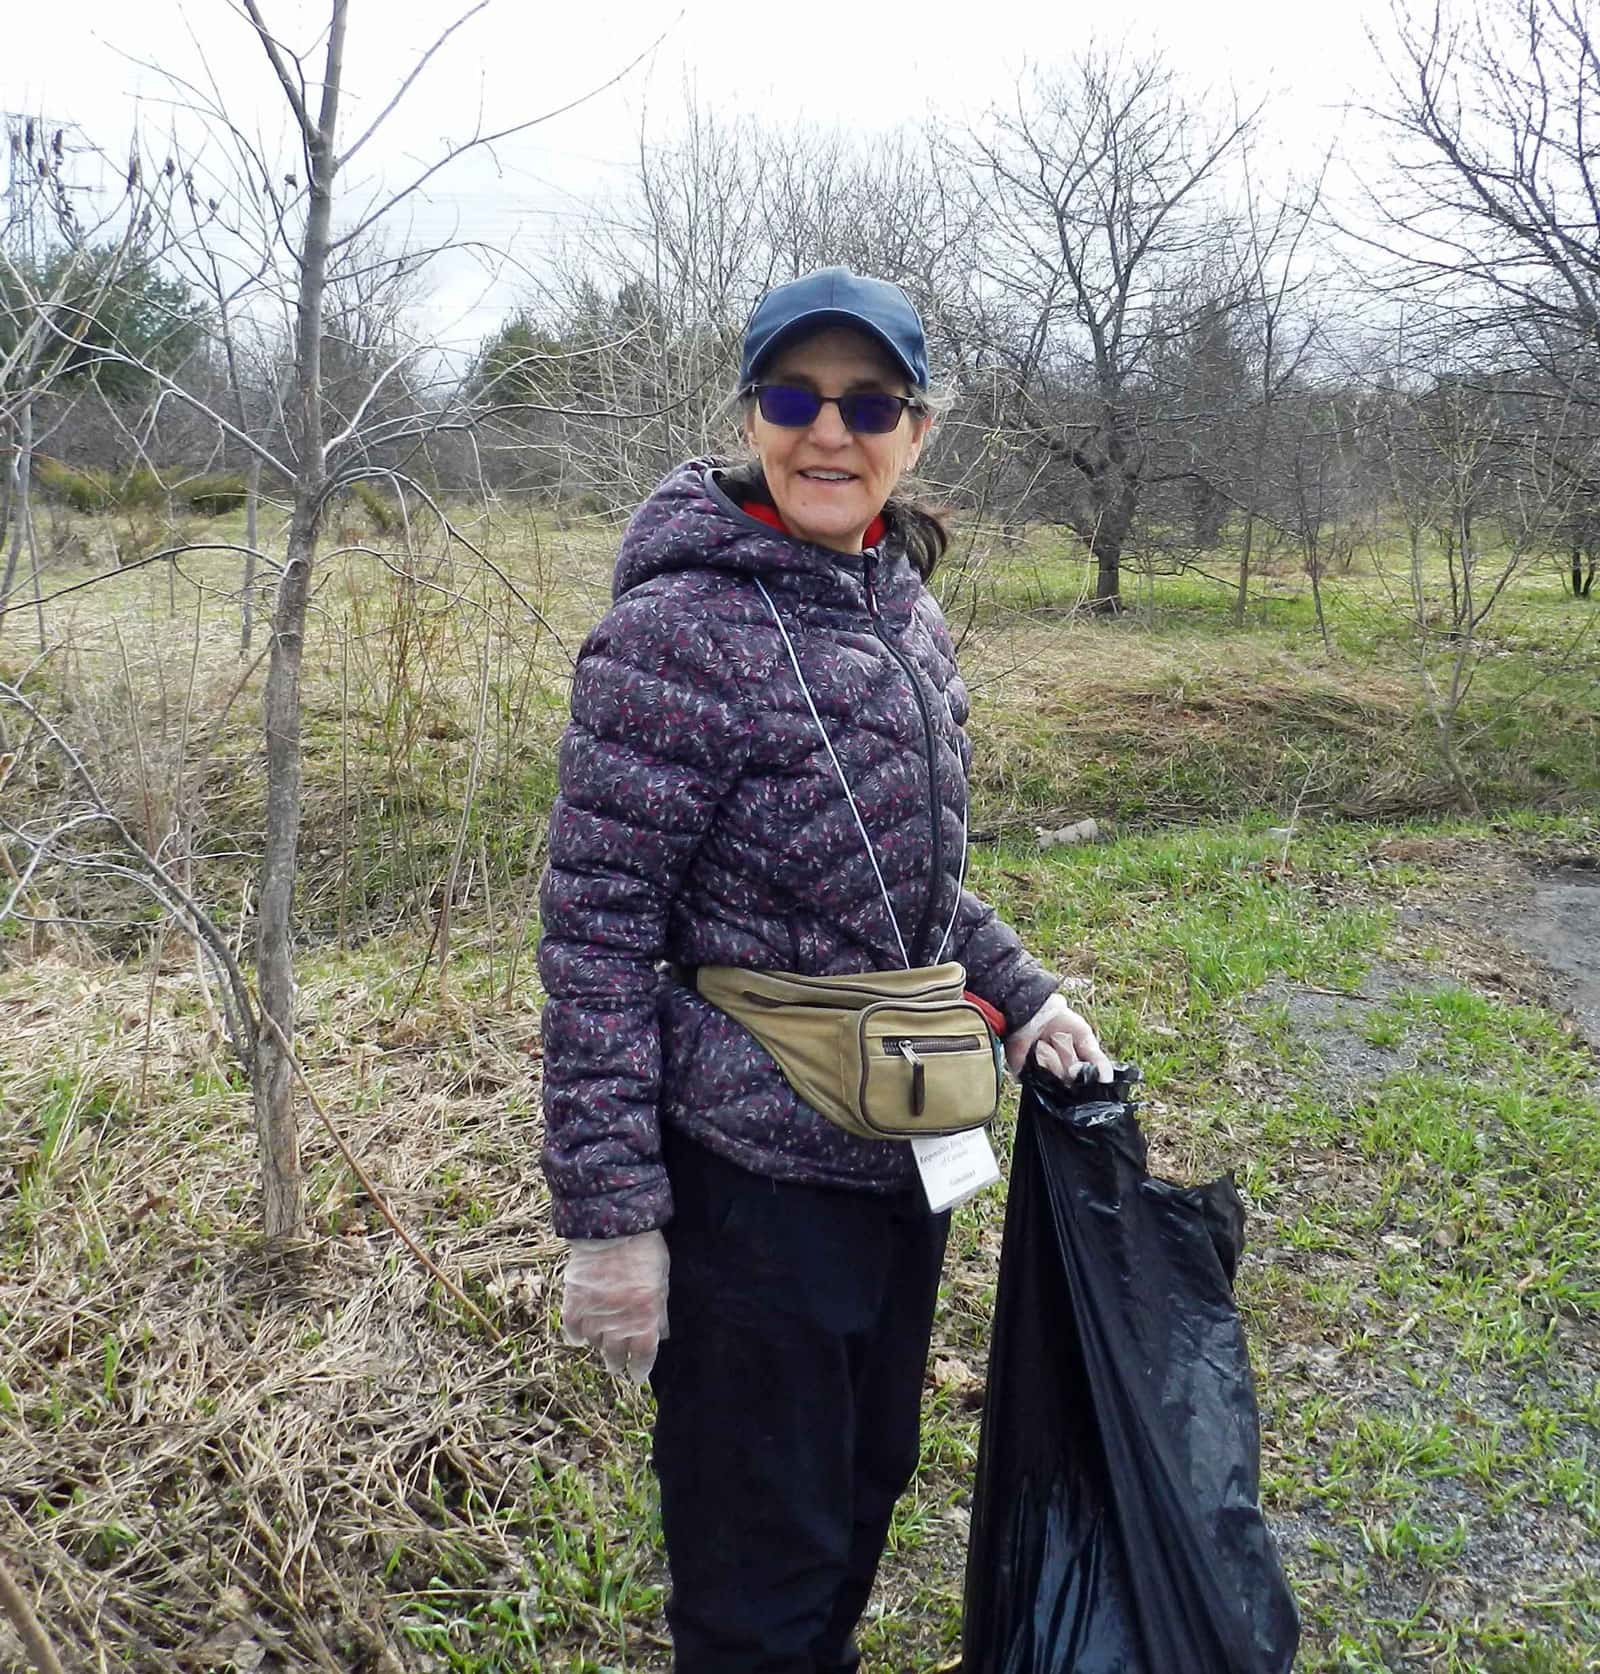 Betty Harris cleans up around the parking lot near the Shea Woods.